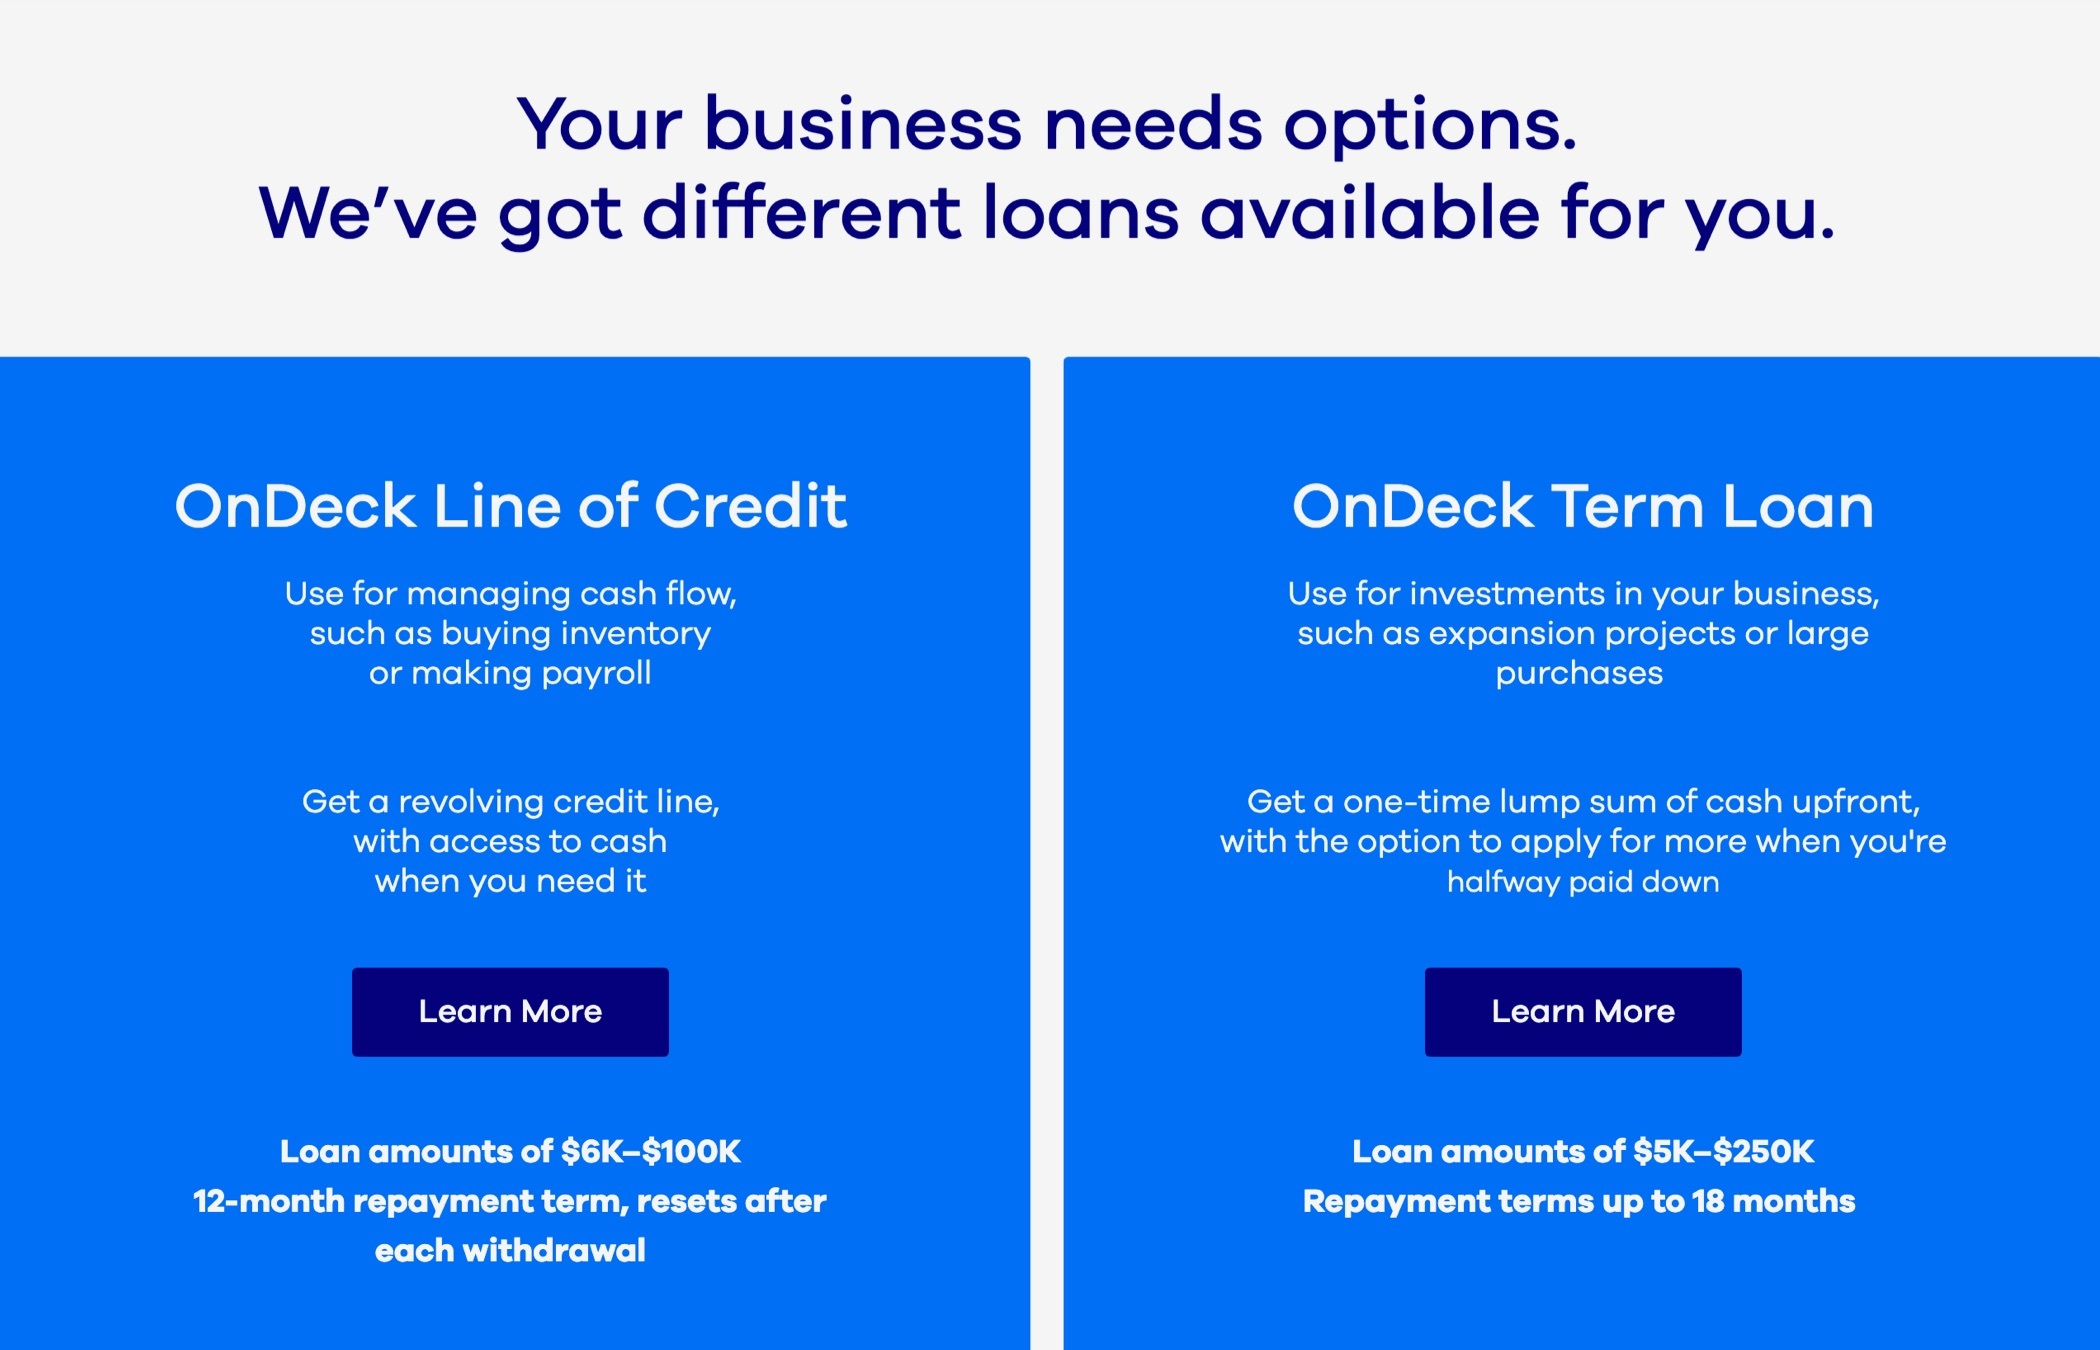 A section of the OnDeck website showing information about lines of credit and term loan options side by side.